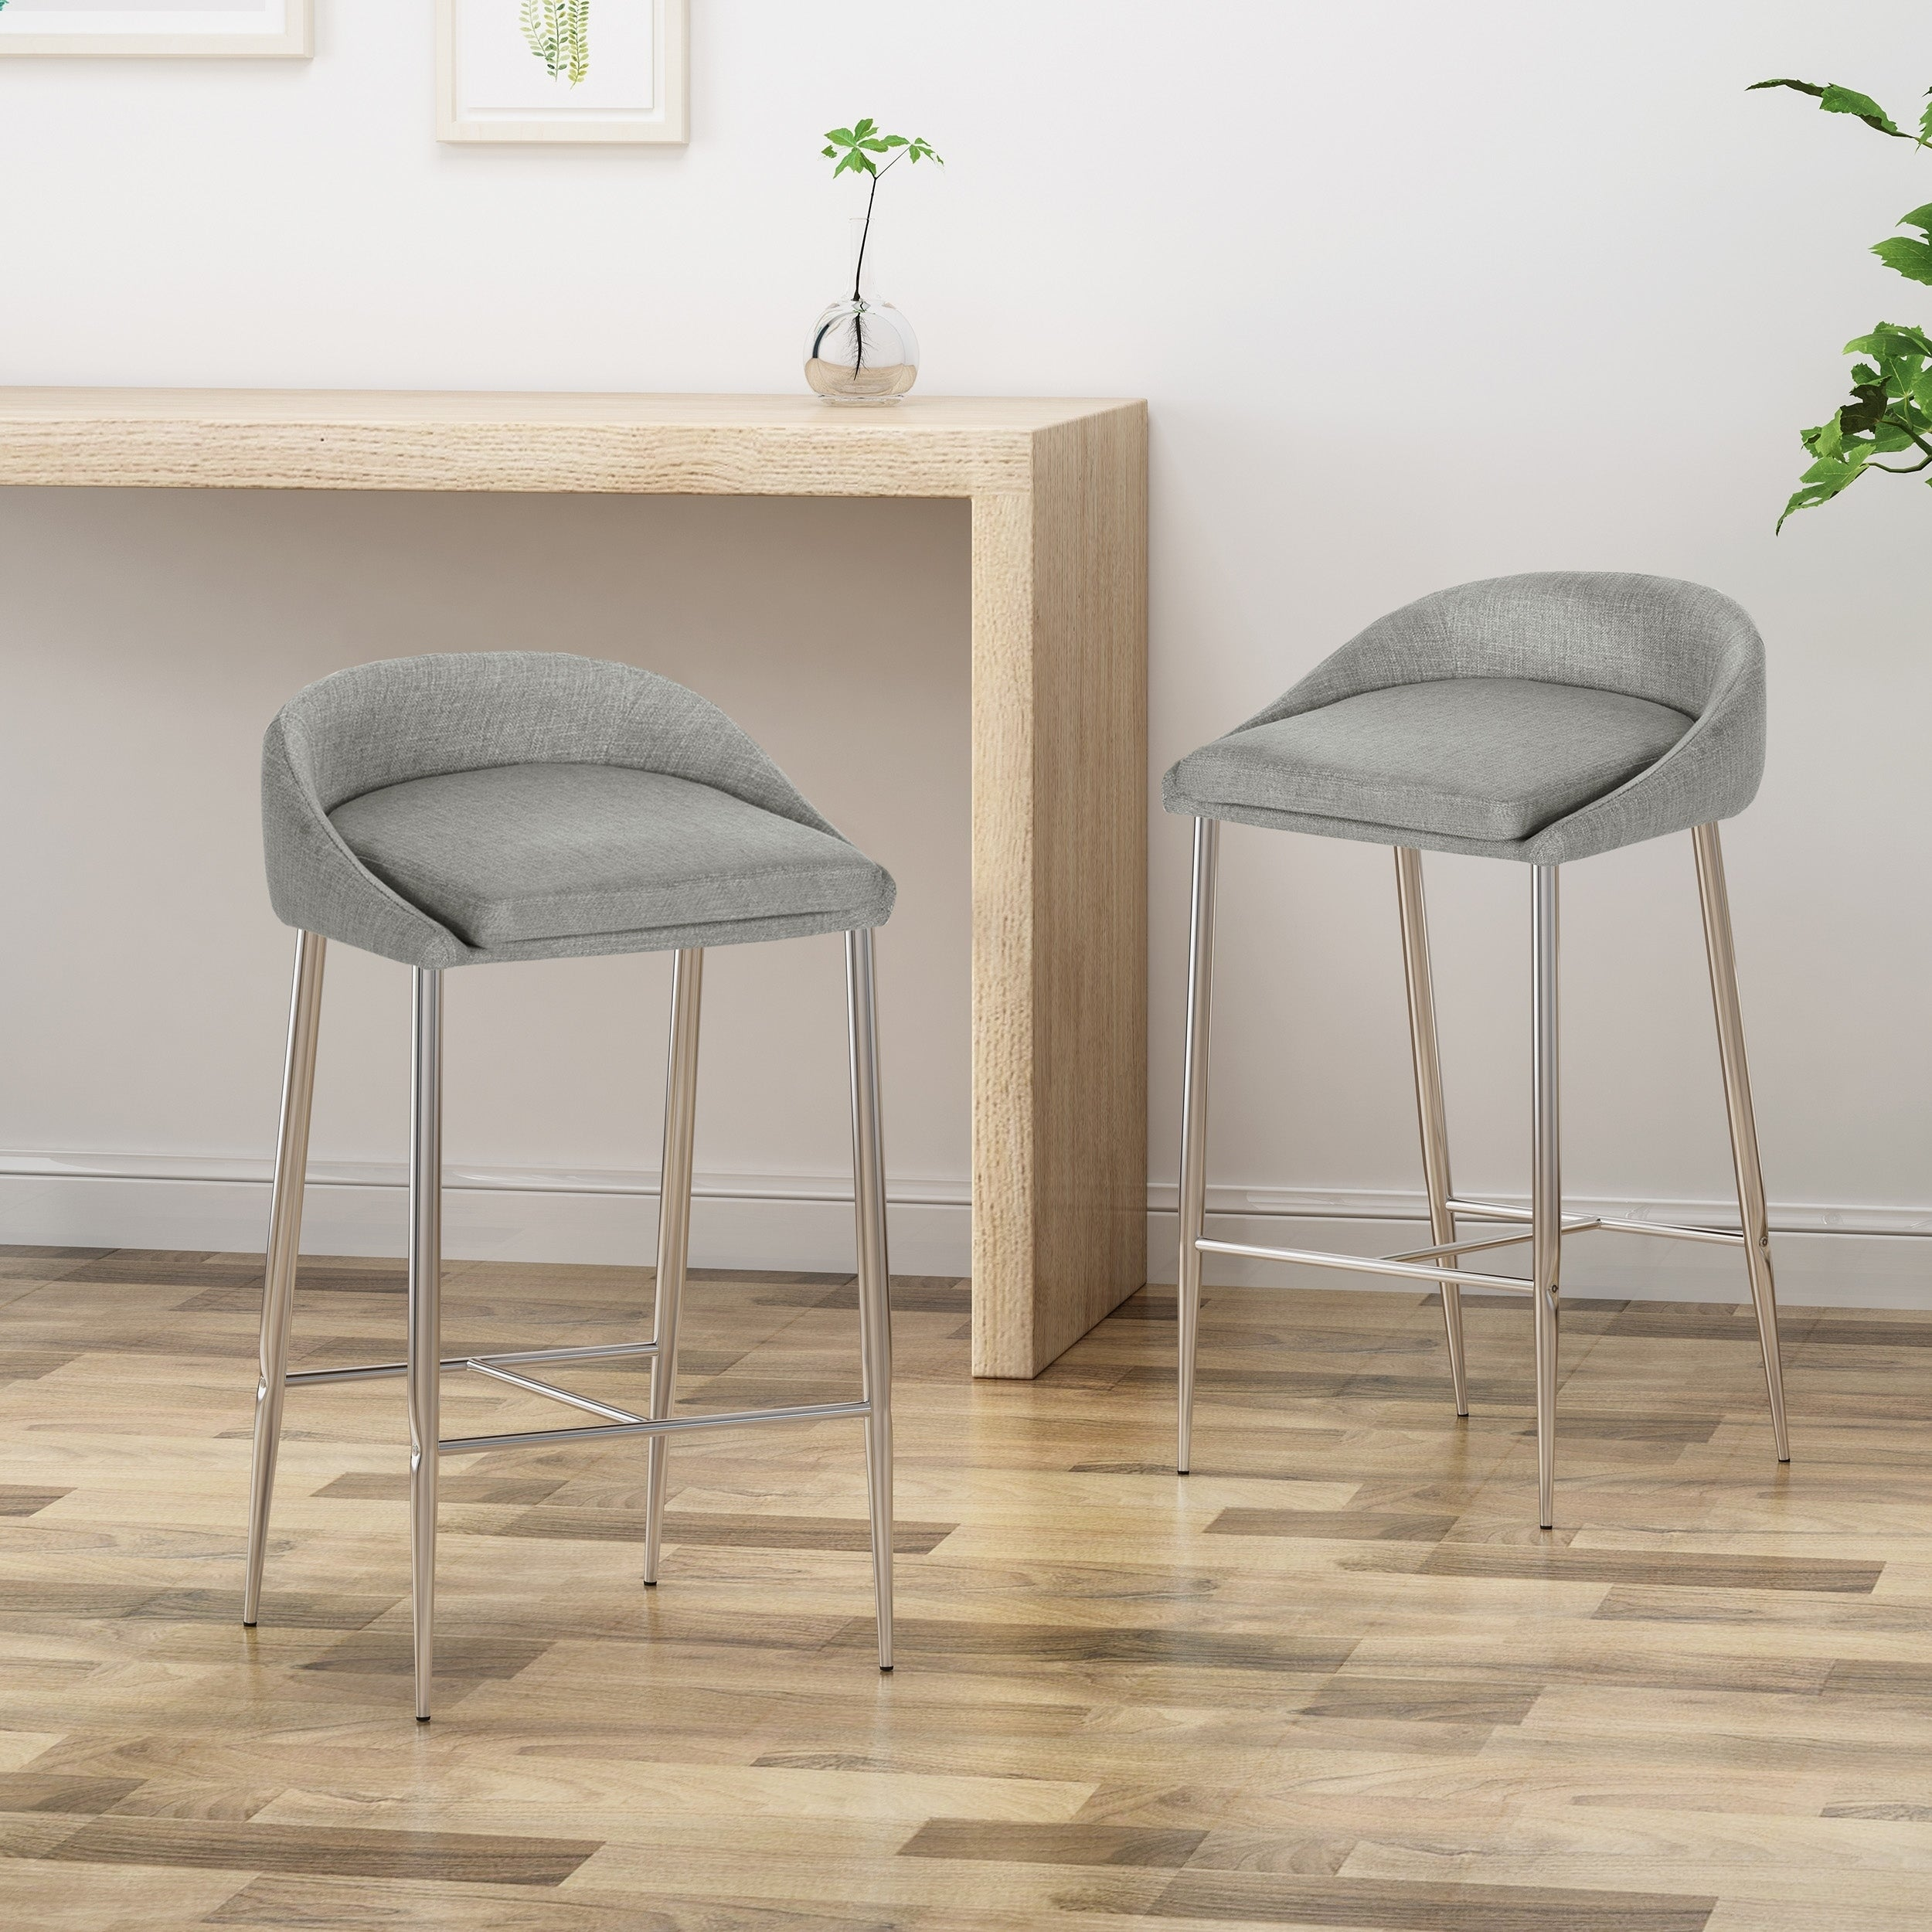 Picture of: Bandini Modern Upholstered Counter Stools With Chrome Legs Set Of 2 By Christopher Knight Home On Sale Overstock 24151992 Red Chrome